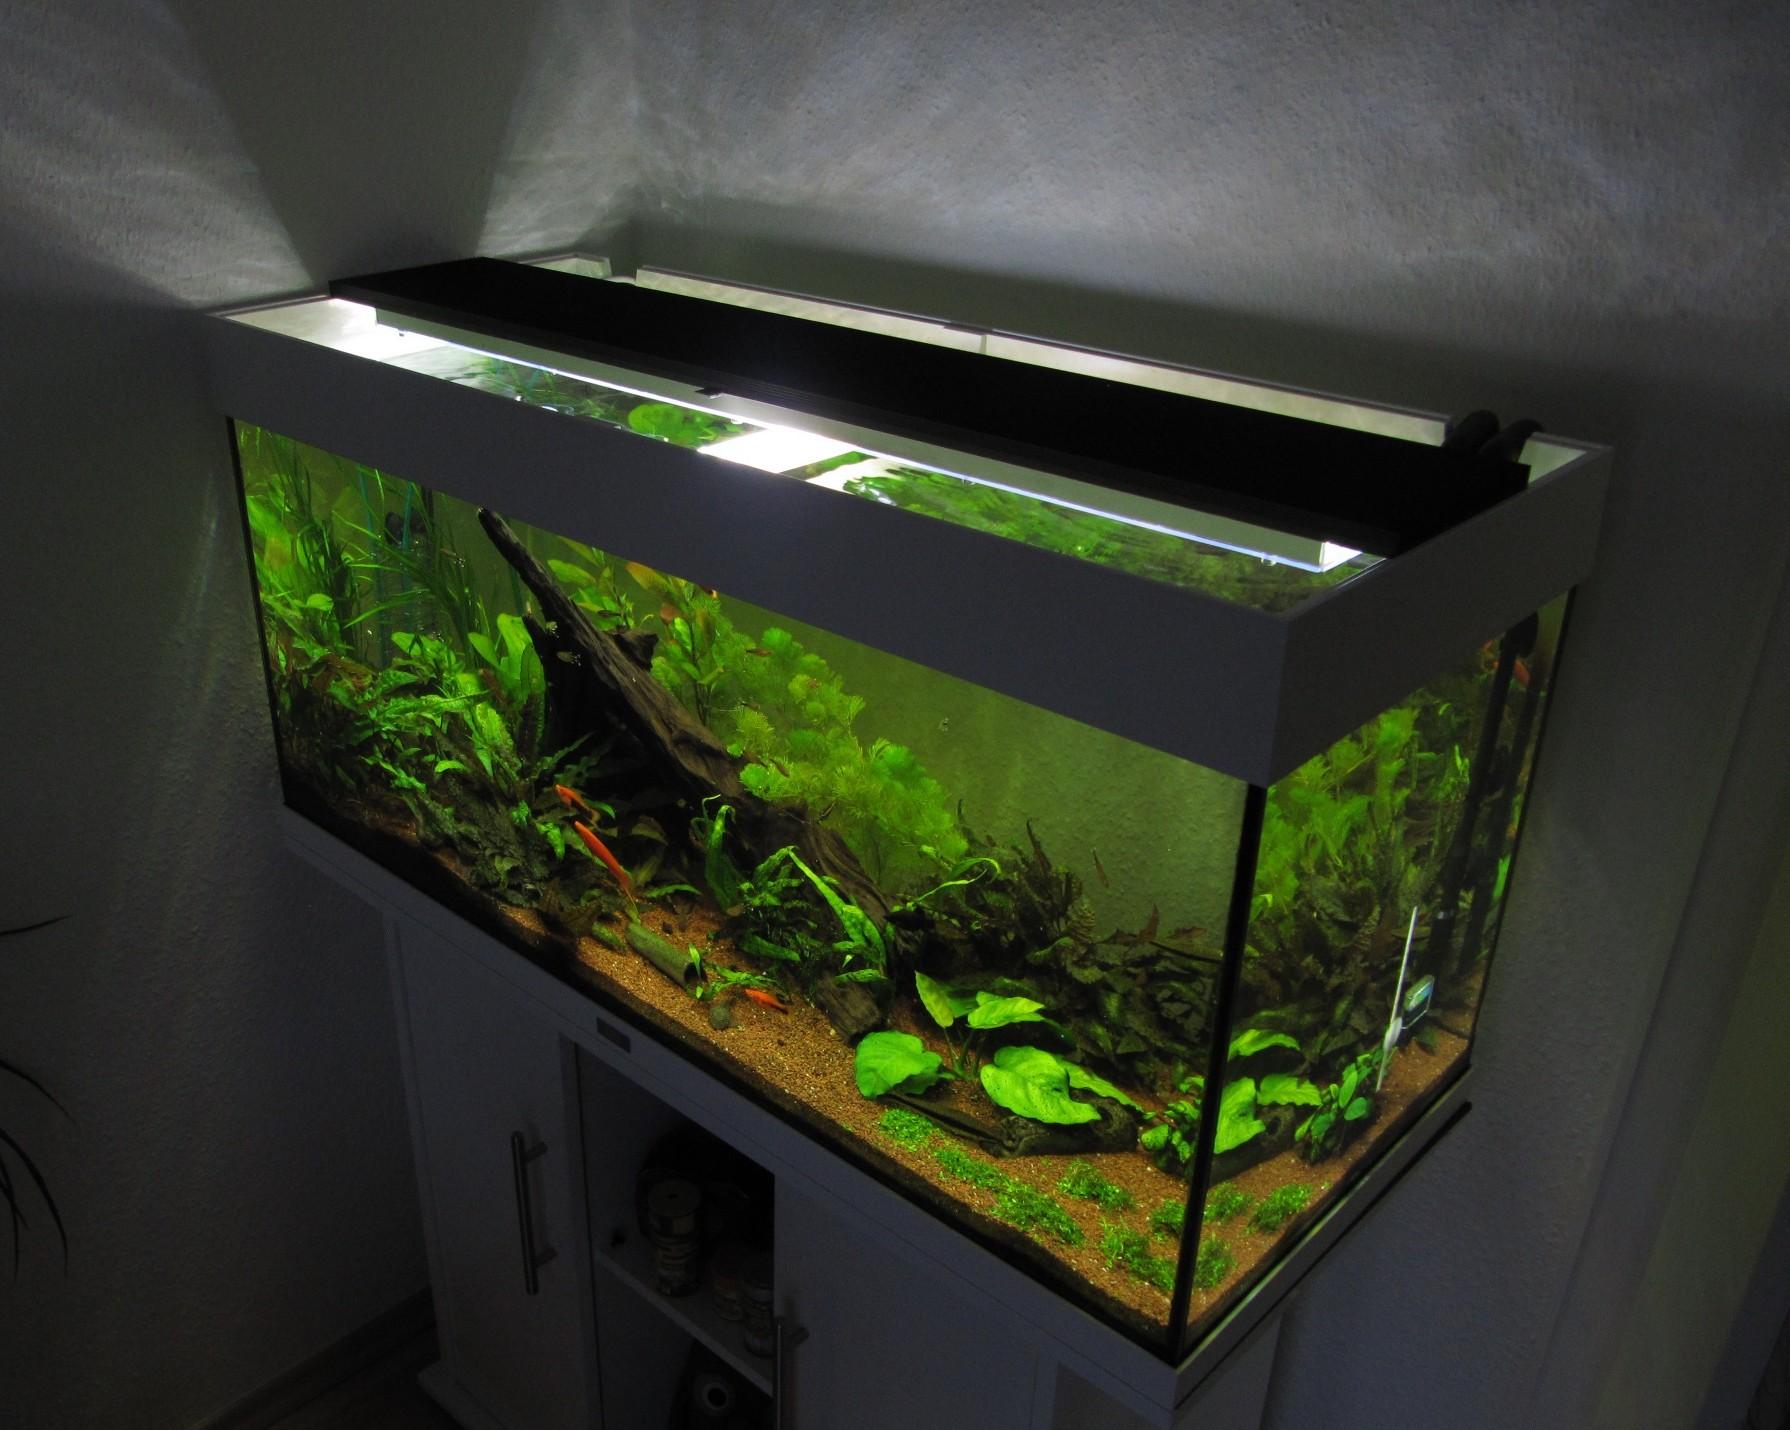 aquarium led beleuchtung selber bauen raum und m beldesign inspiration. Black Bedroom Furniture Sets. Home Design Ideas